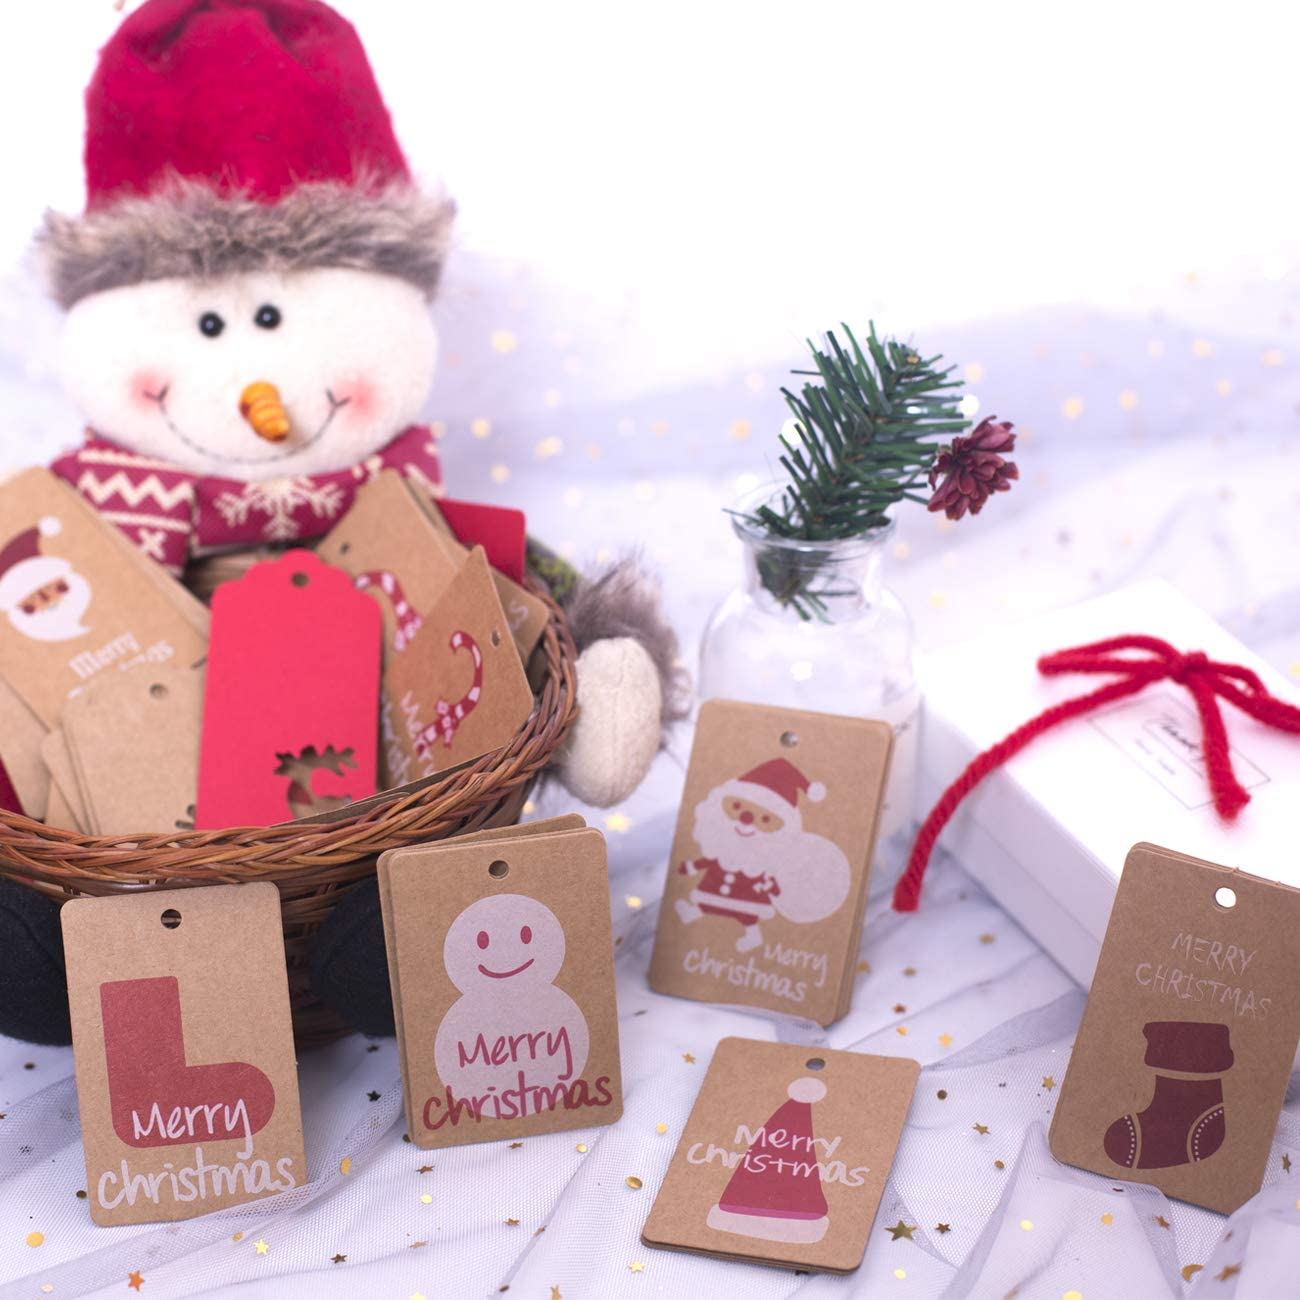 15 Styles WylbJc 150 Pieces Gift Tags Christmas Kraft Paper Hang Label Cards with 20M Brown Hemp Rope Gift Decoration 20M Red and White Cotton Twine and 12pcs Xmas Stickers for DIY Arts/&Crafts